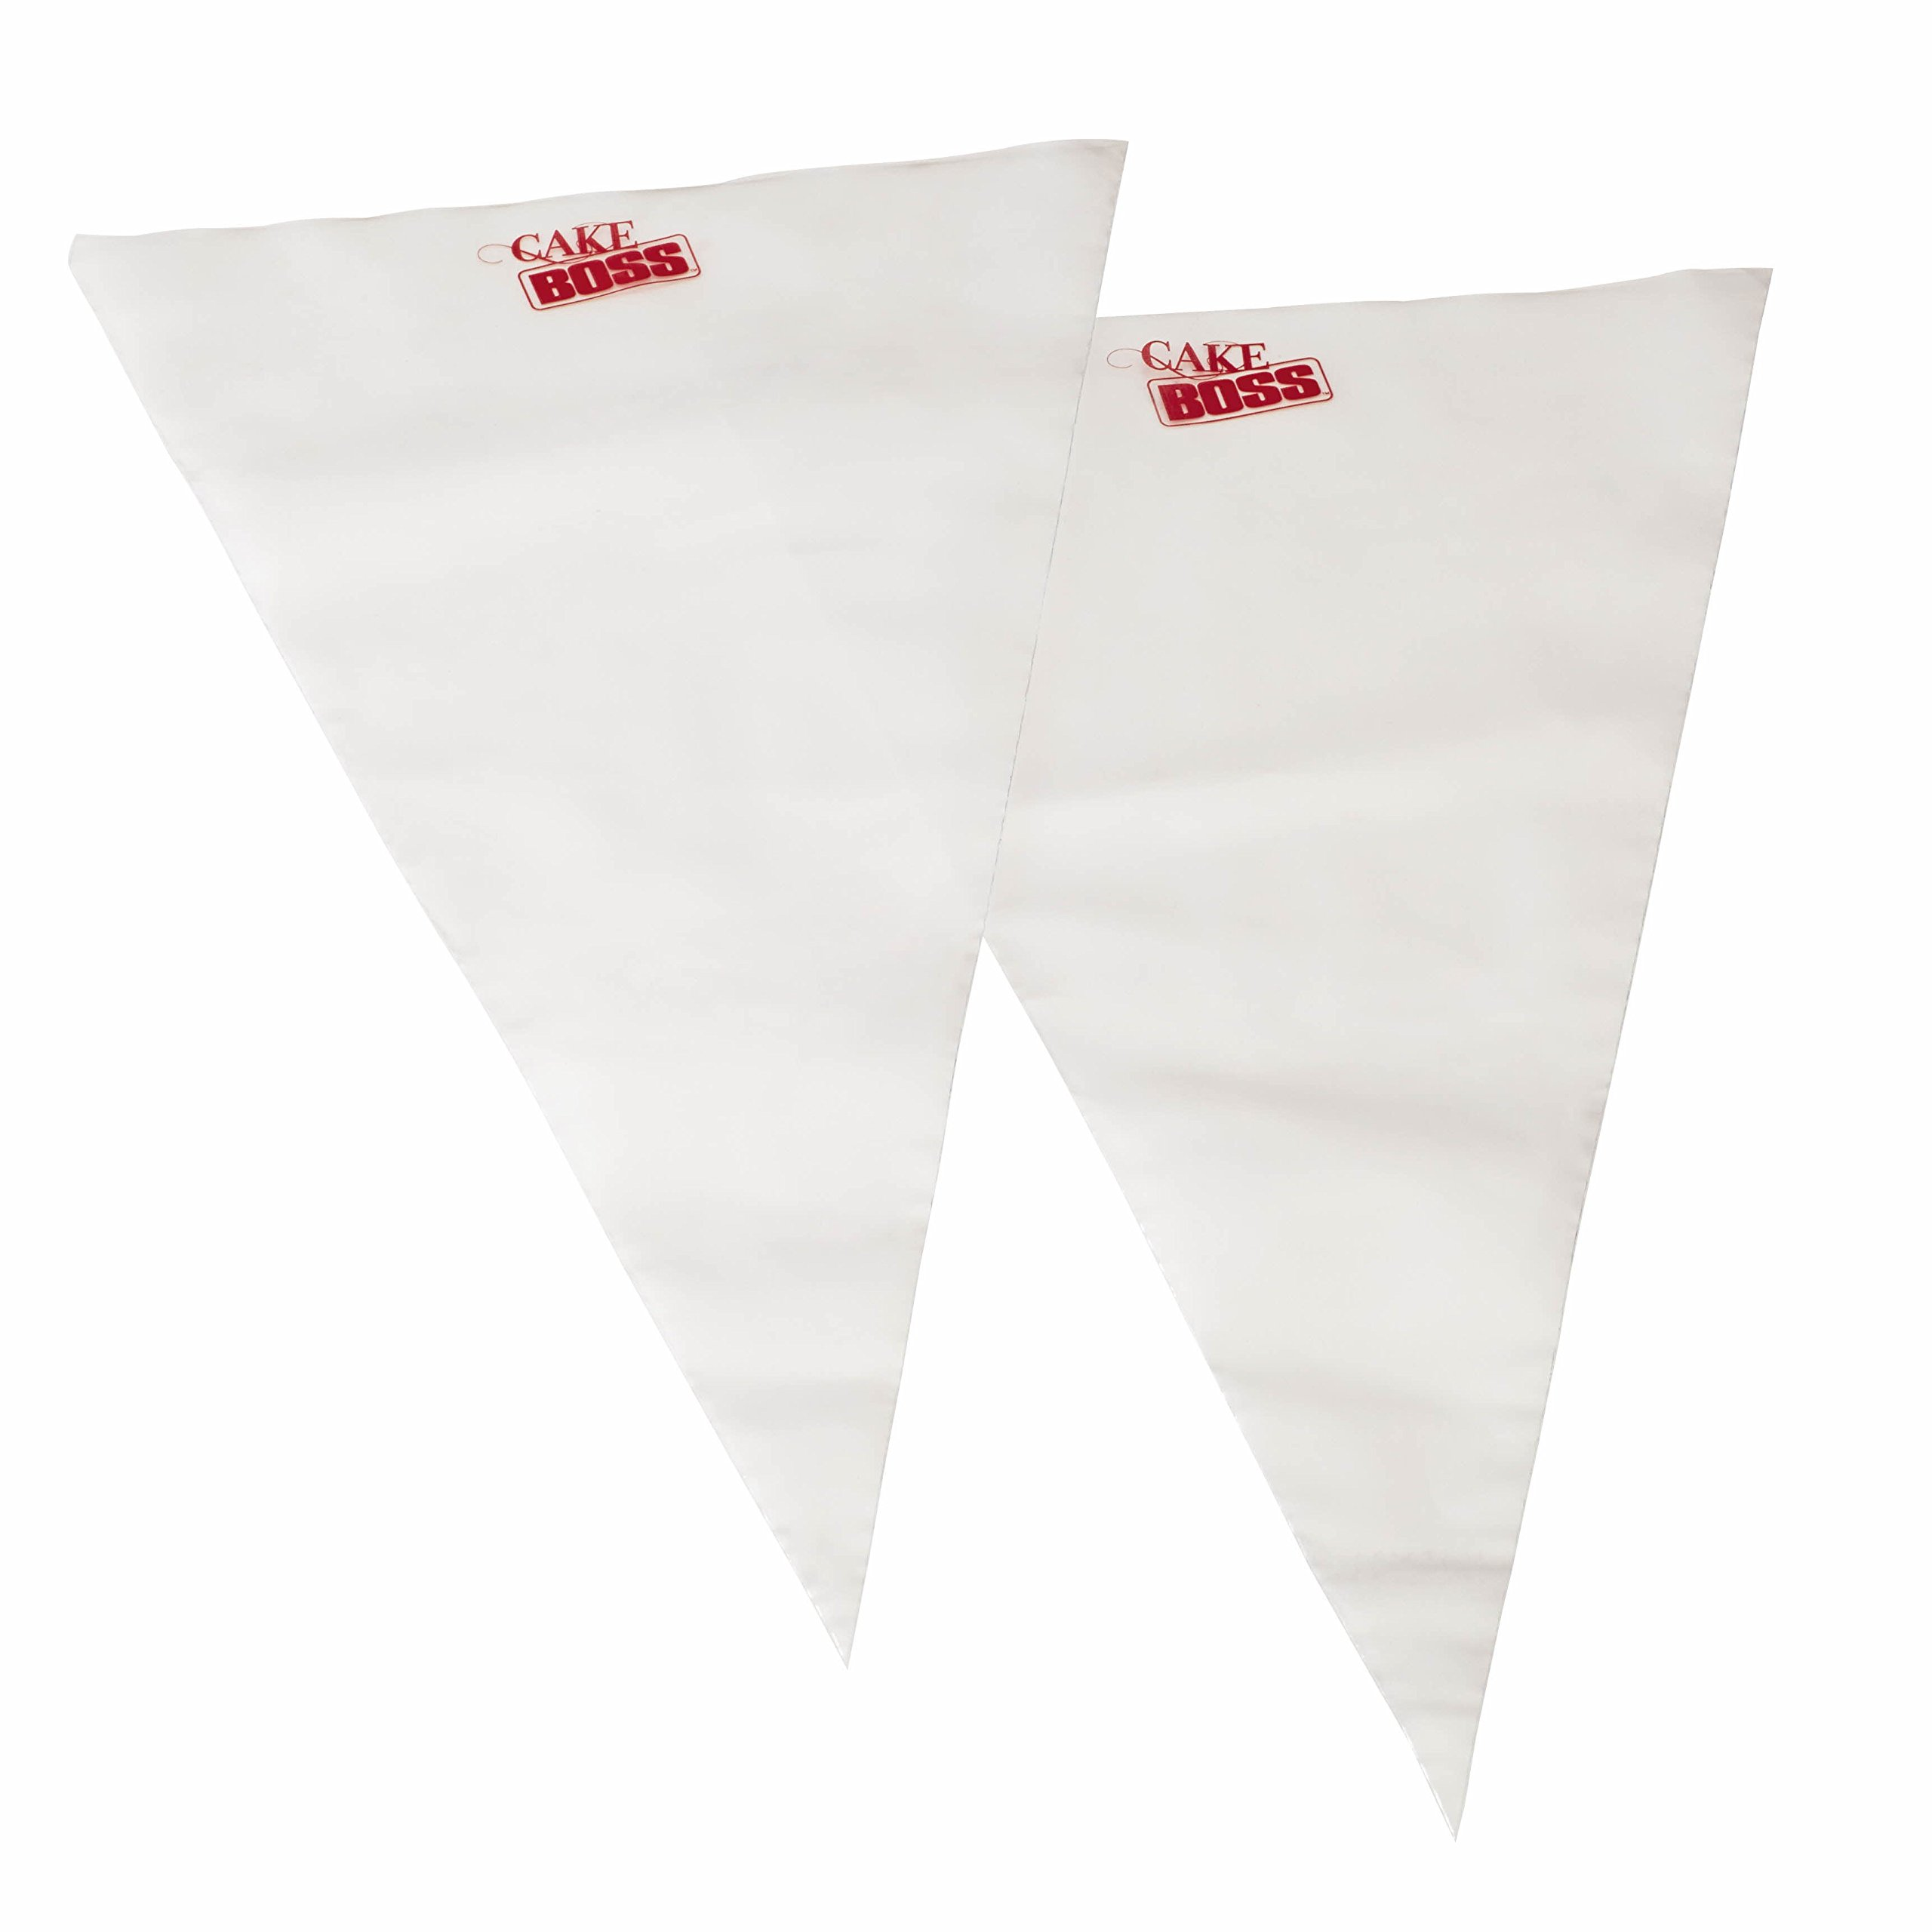 Cake Boss Decorating Tools 18-Inch Disposable Icing Duo Decorating Bags, 25 Count by Cake Boss